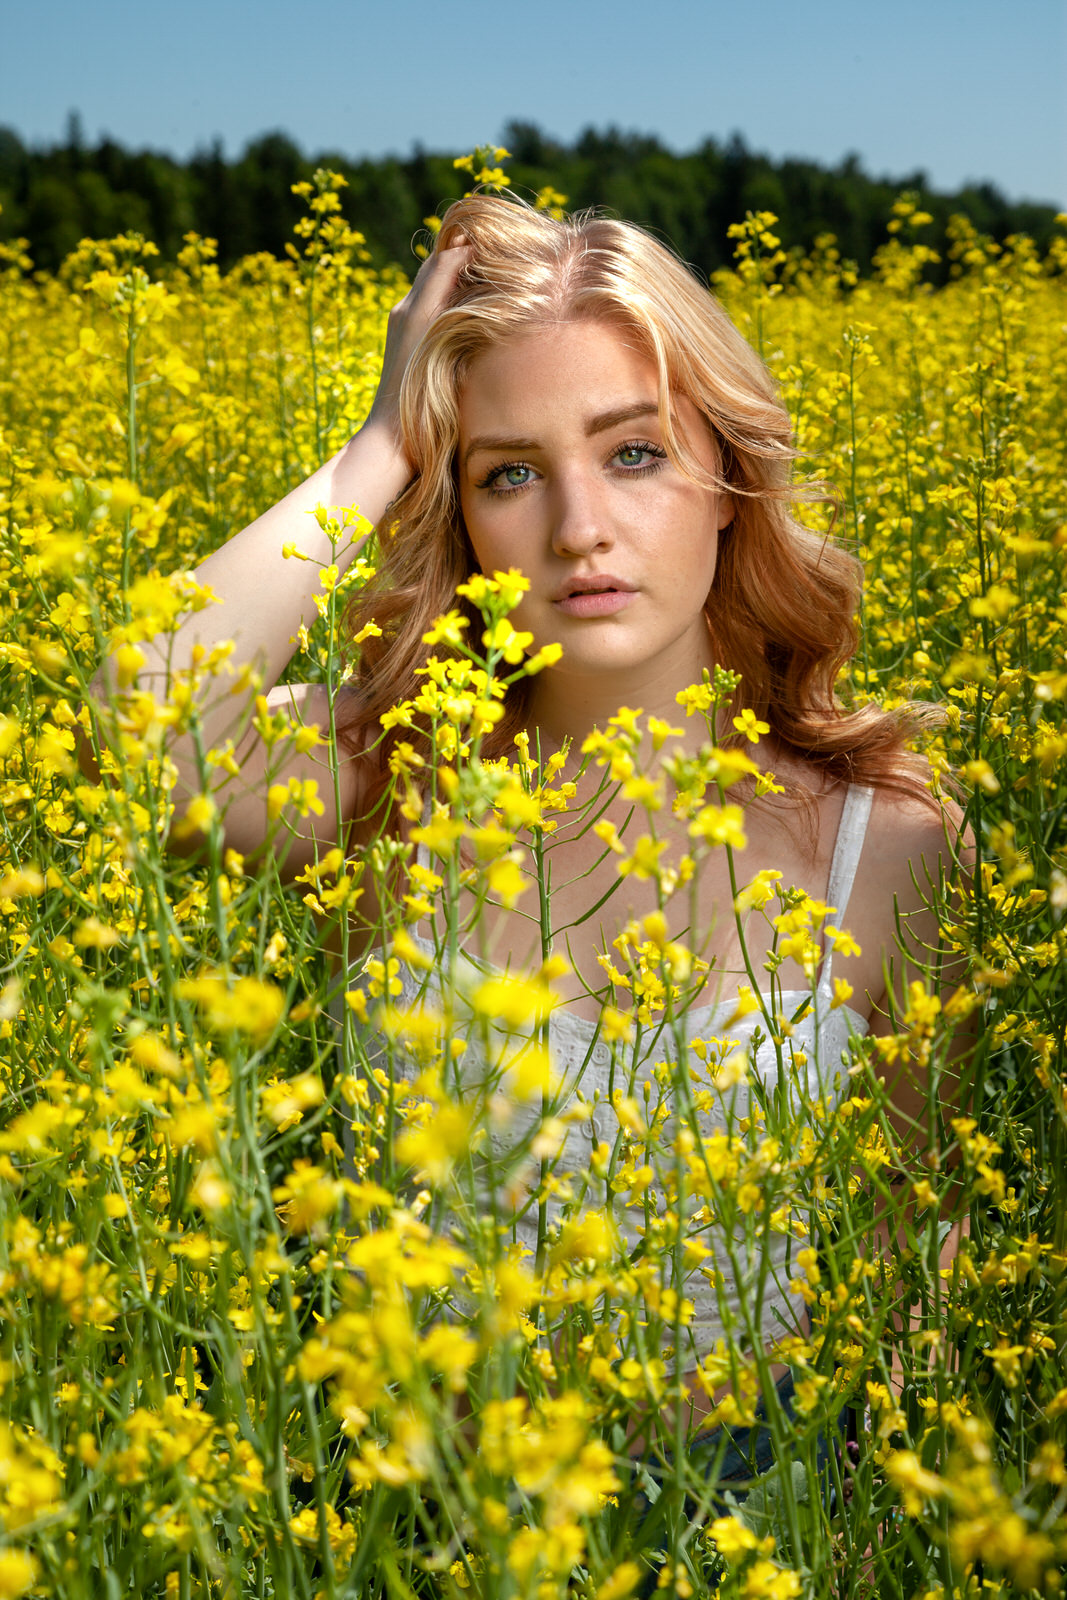 Derica in Canola Field